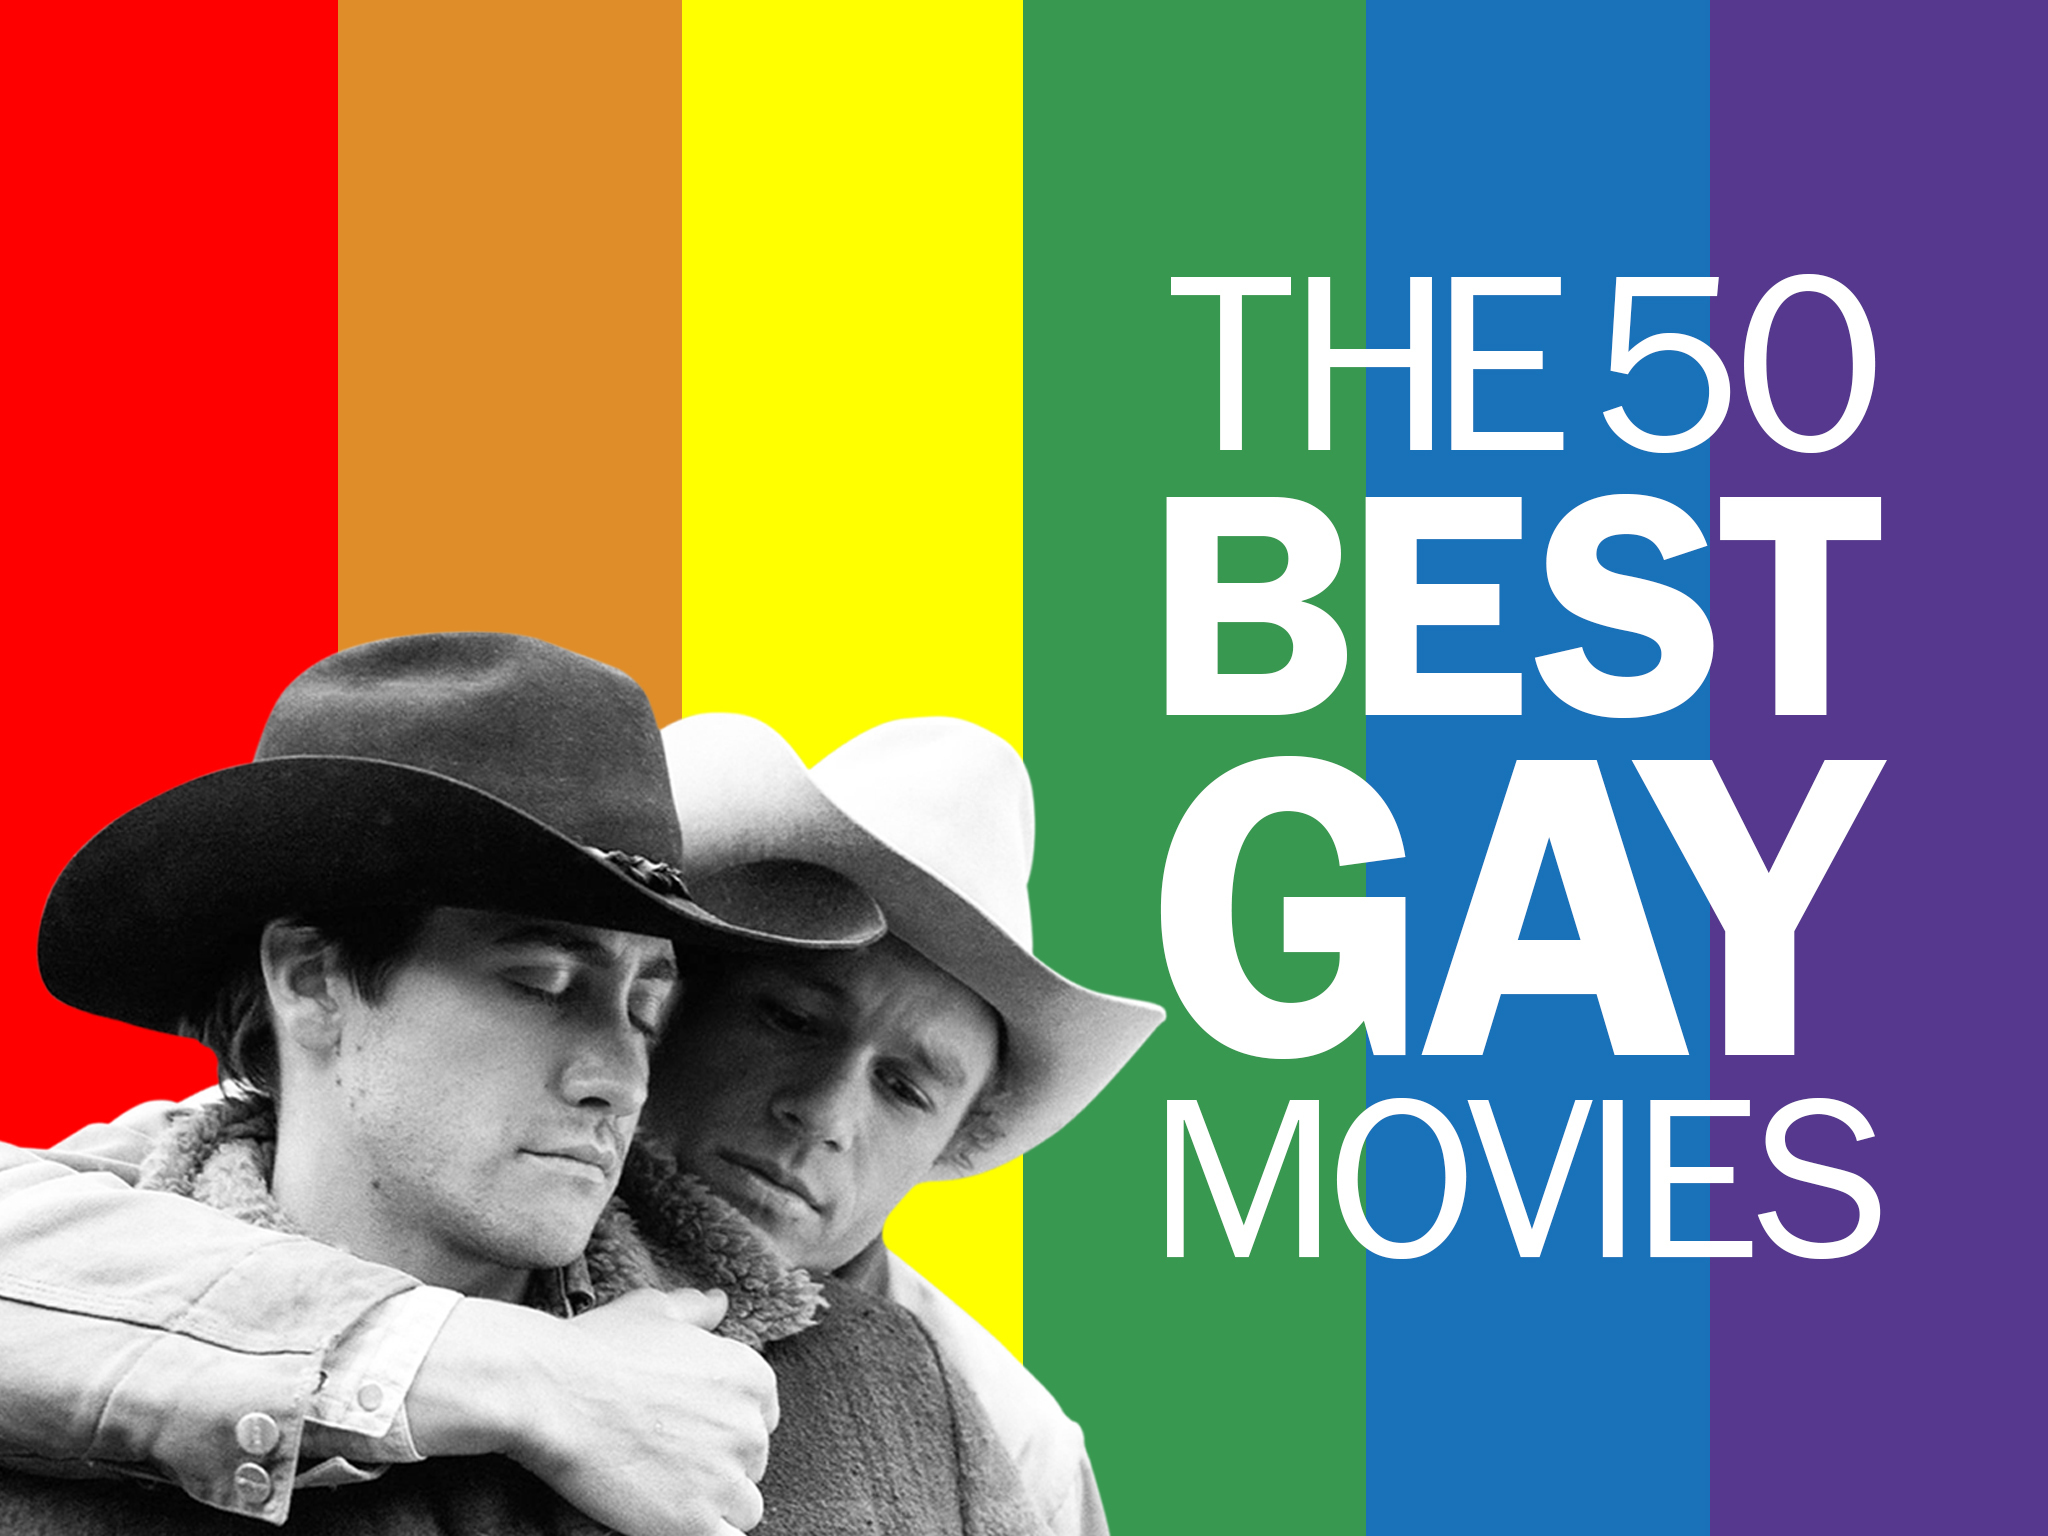 Gay black movie list